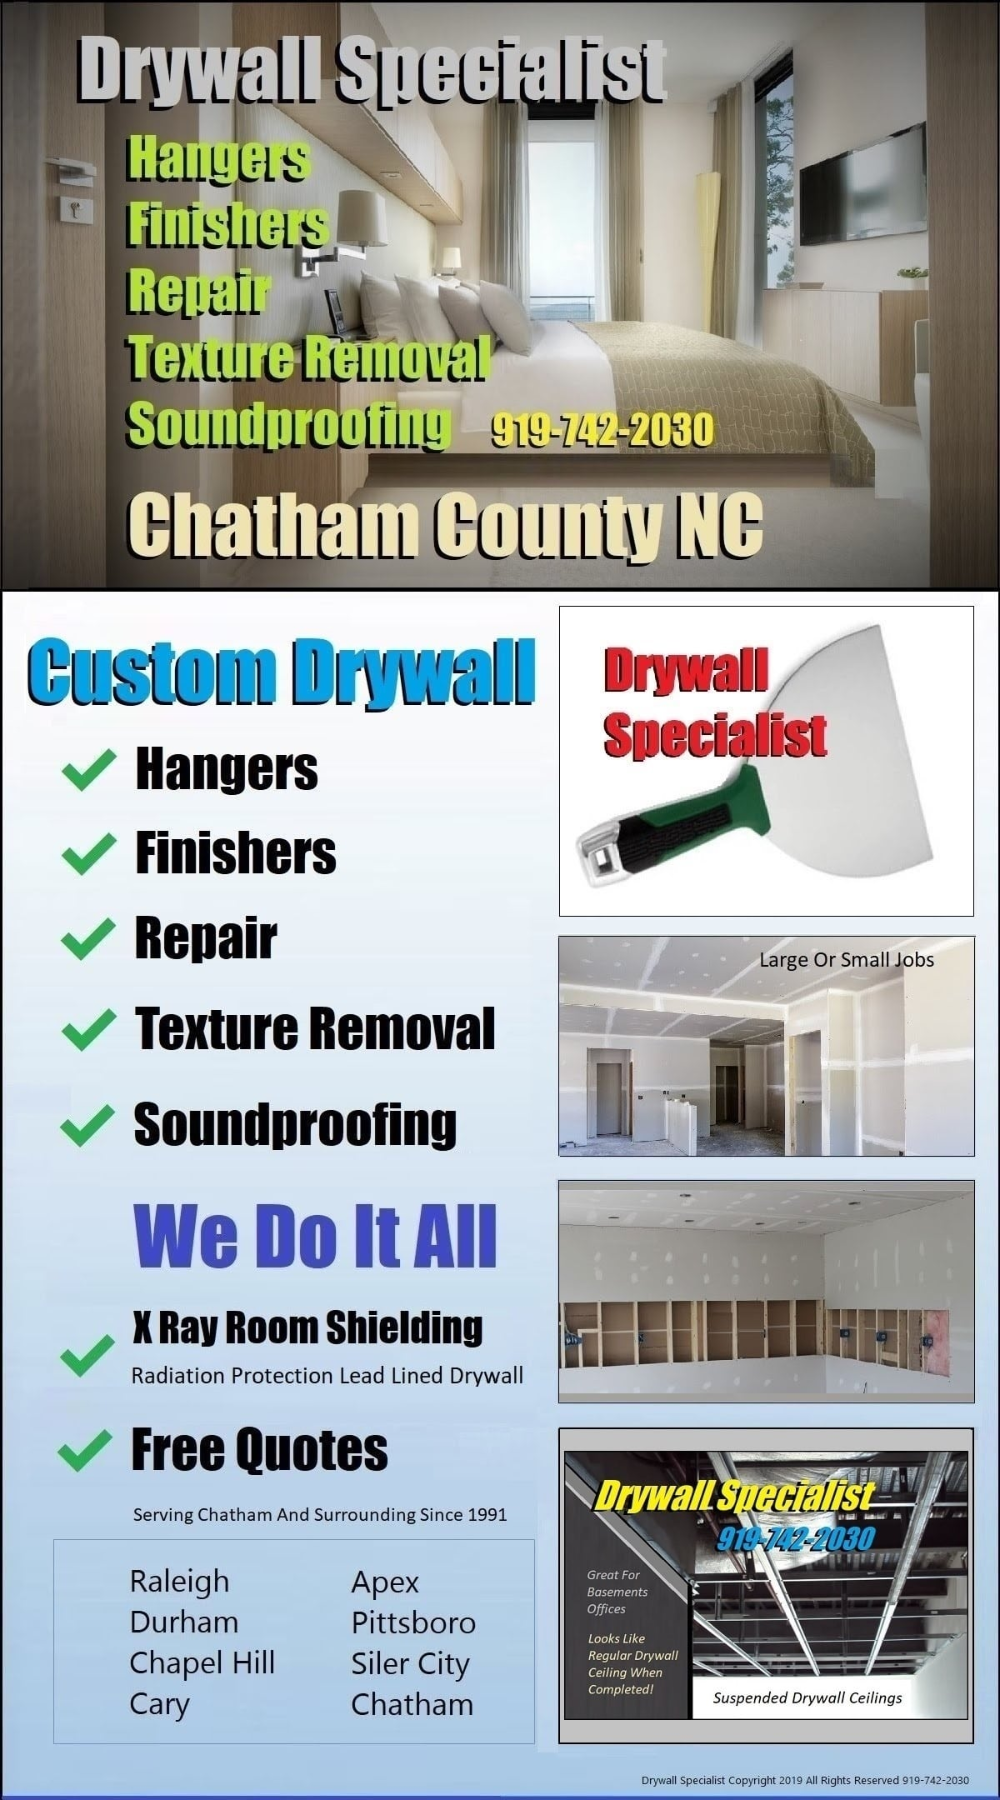 Custom Wallboard Pittsboro Drywall Specialist Competitive Prices And Free Quotes On Large Or Small Custom Sheetrock Wa In 2020 Drywall Repair Chatham County Pittsboro